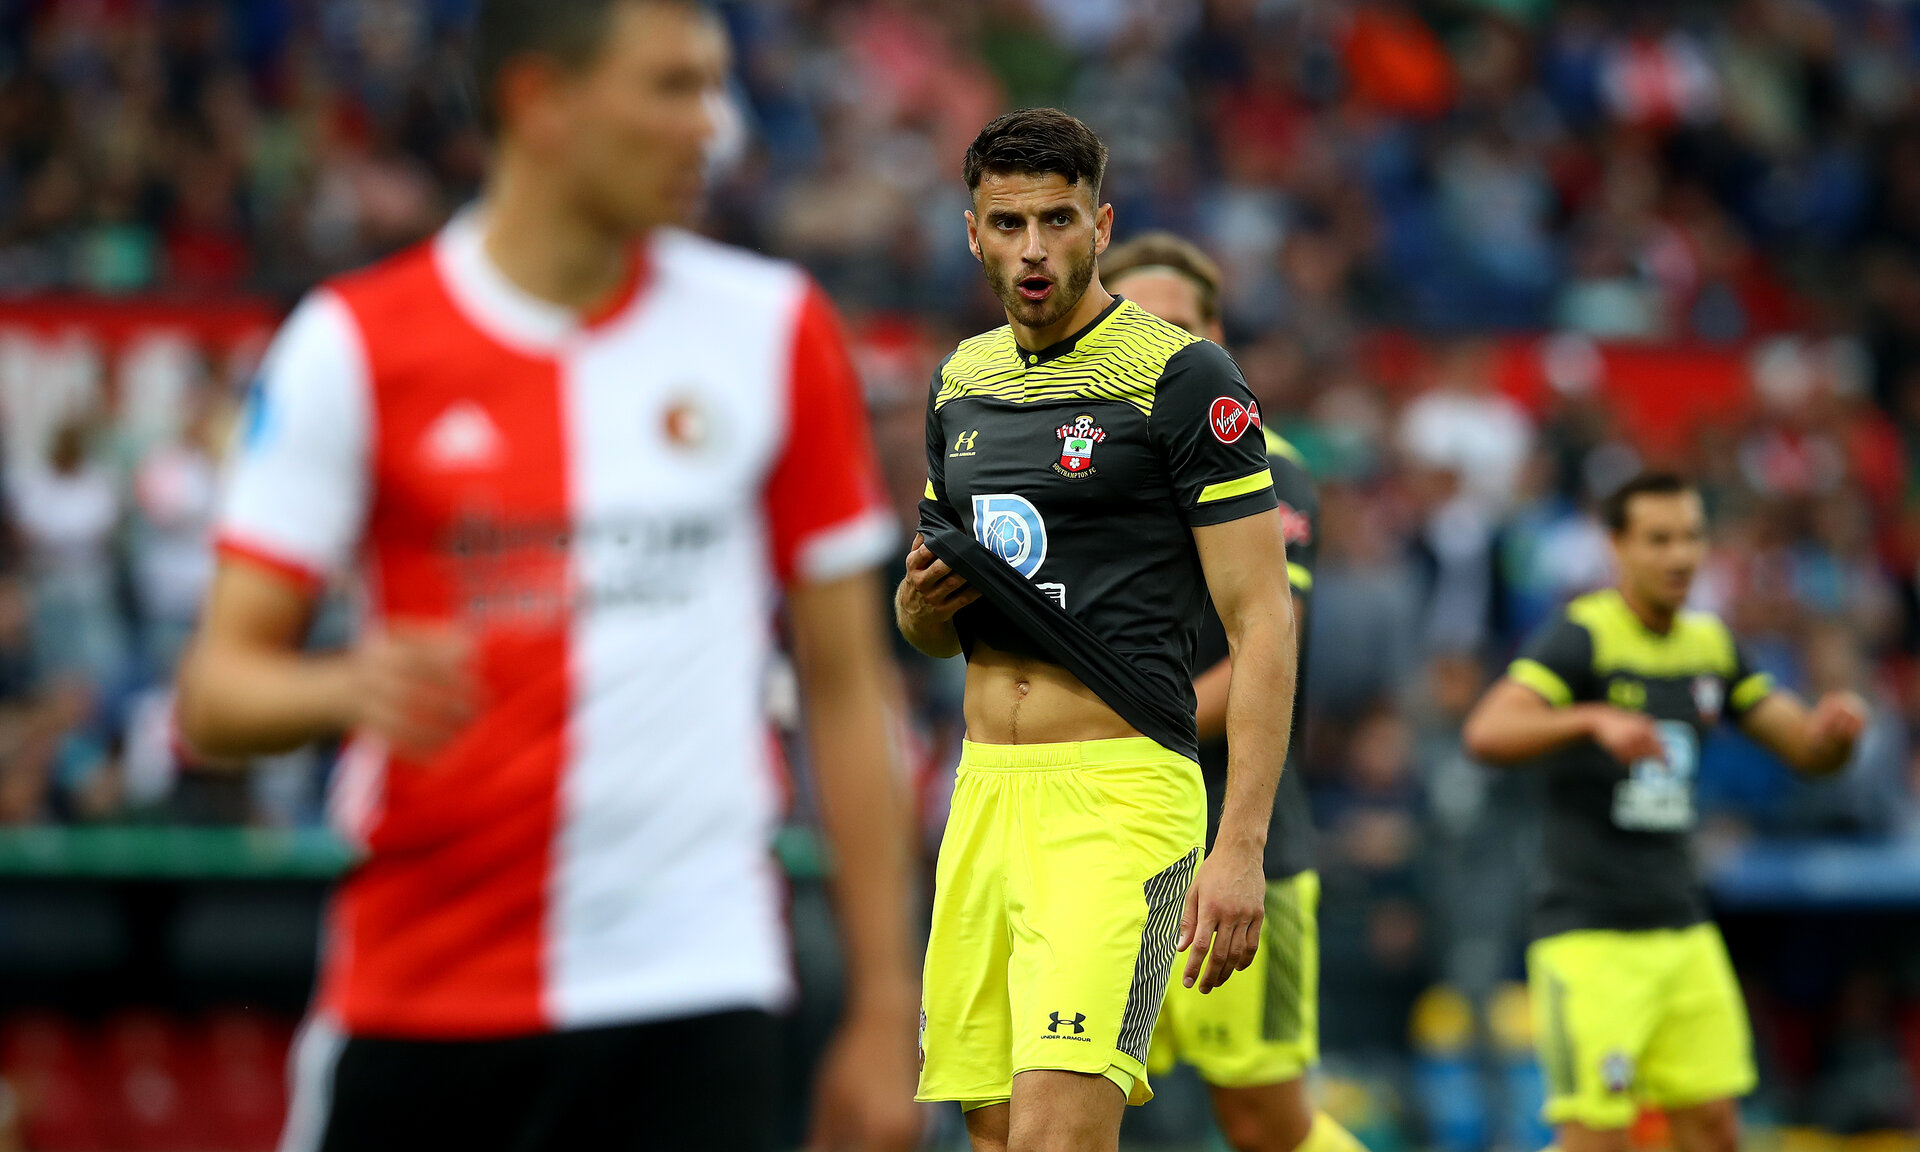 ROTTERDAM, NETHERLANDS - JULY 28: Wesley Hoedt of Southampton during the pre season friendly match between Feyenoord and Southampton FC at De Kuip on July 28, 2019 in Rotterdam, Netherlands. (Photo by Matt Watson/Southampton FC via Getty Images)